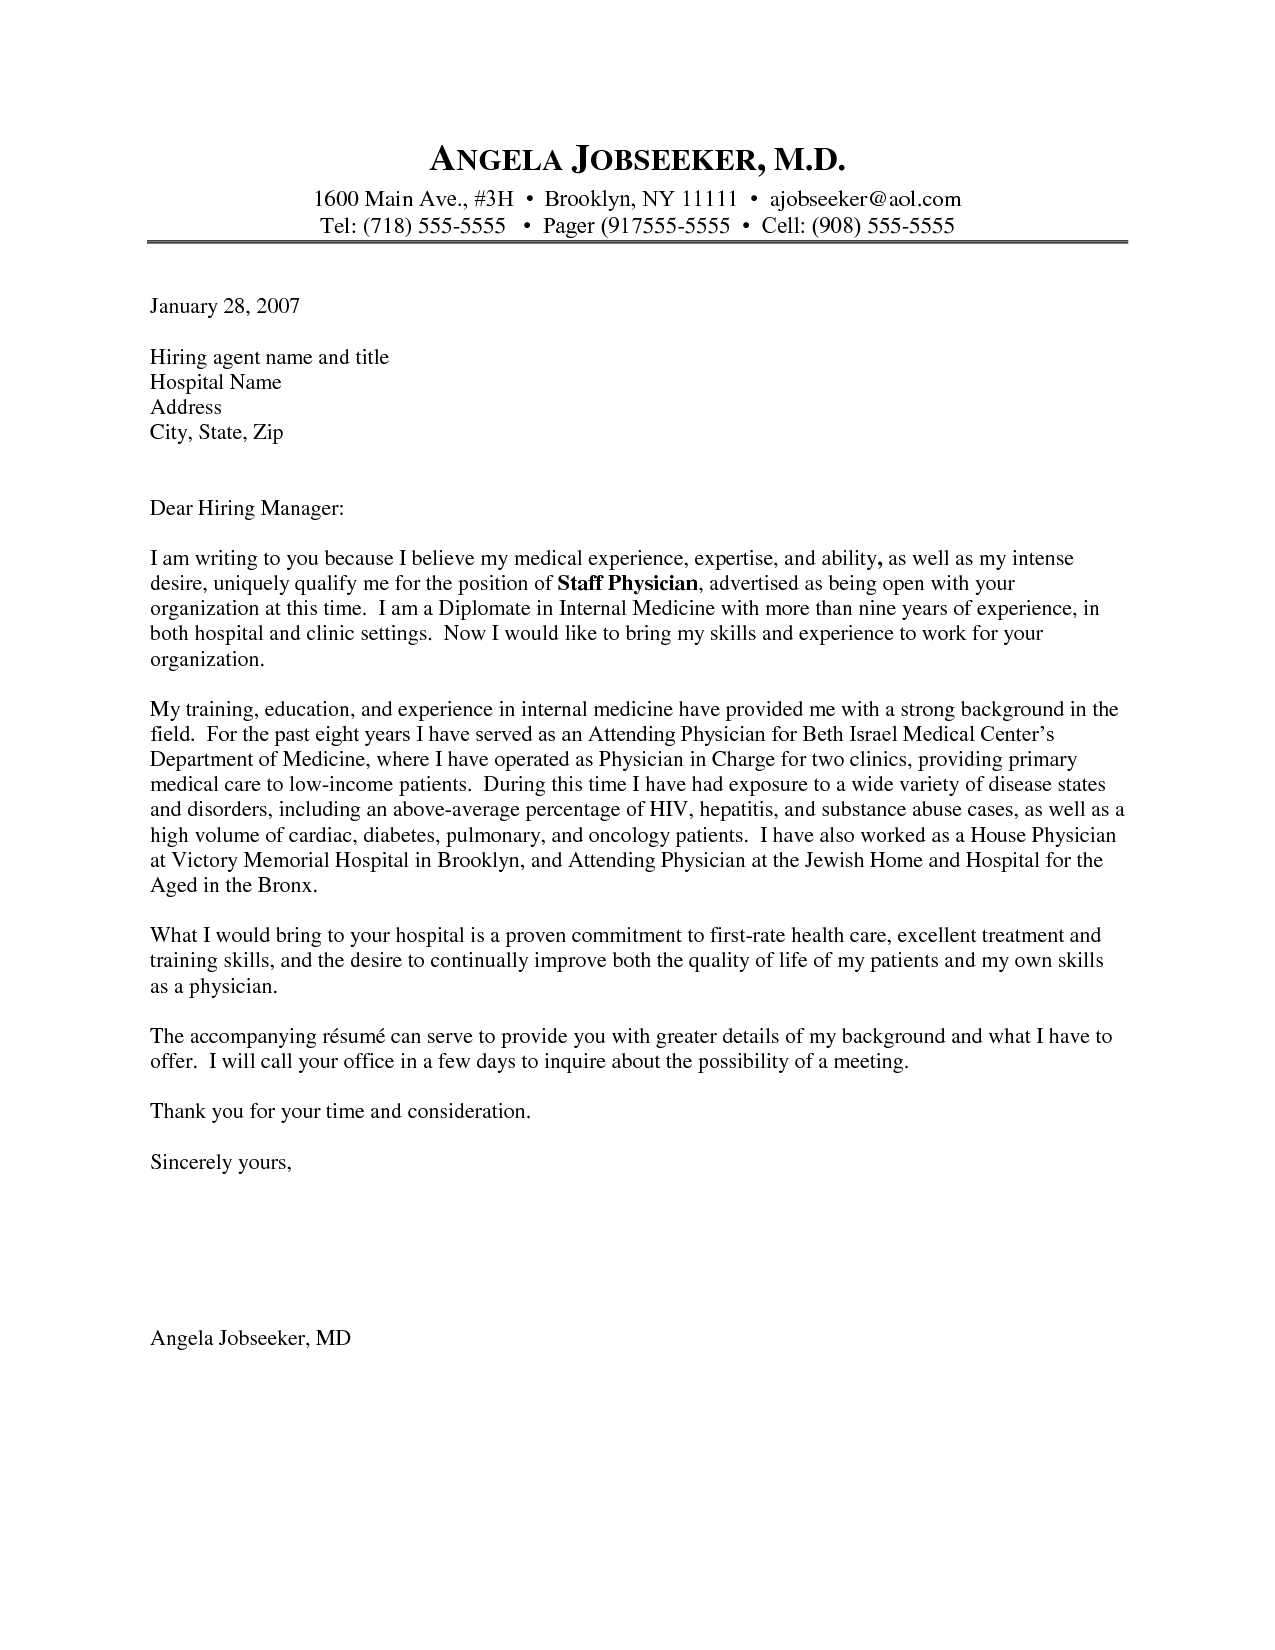 examples of medical coverletters doctor cover letter example examples of medical coverletters doctor cover letter example